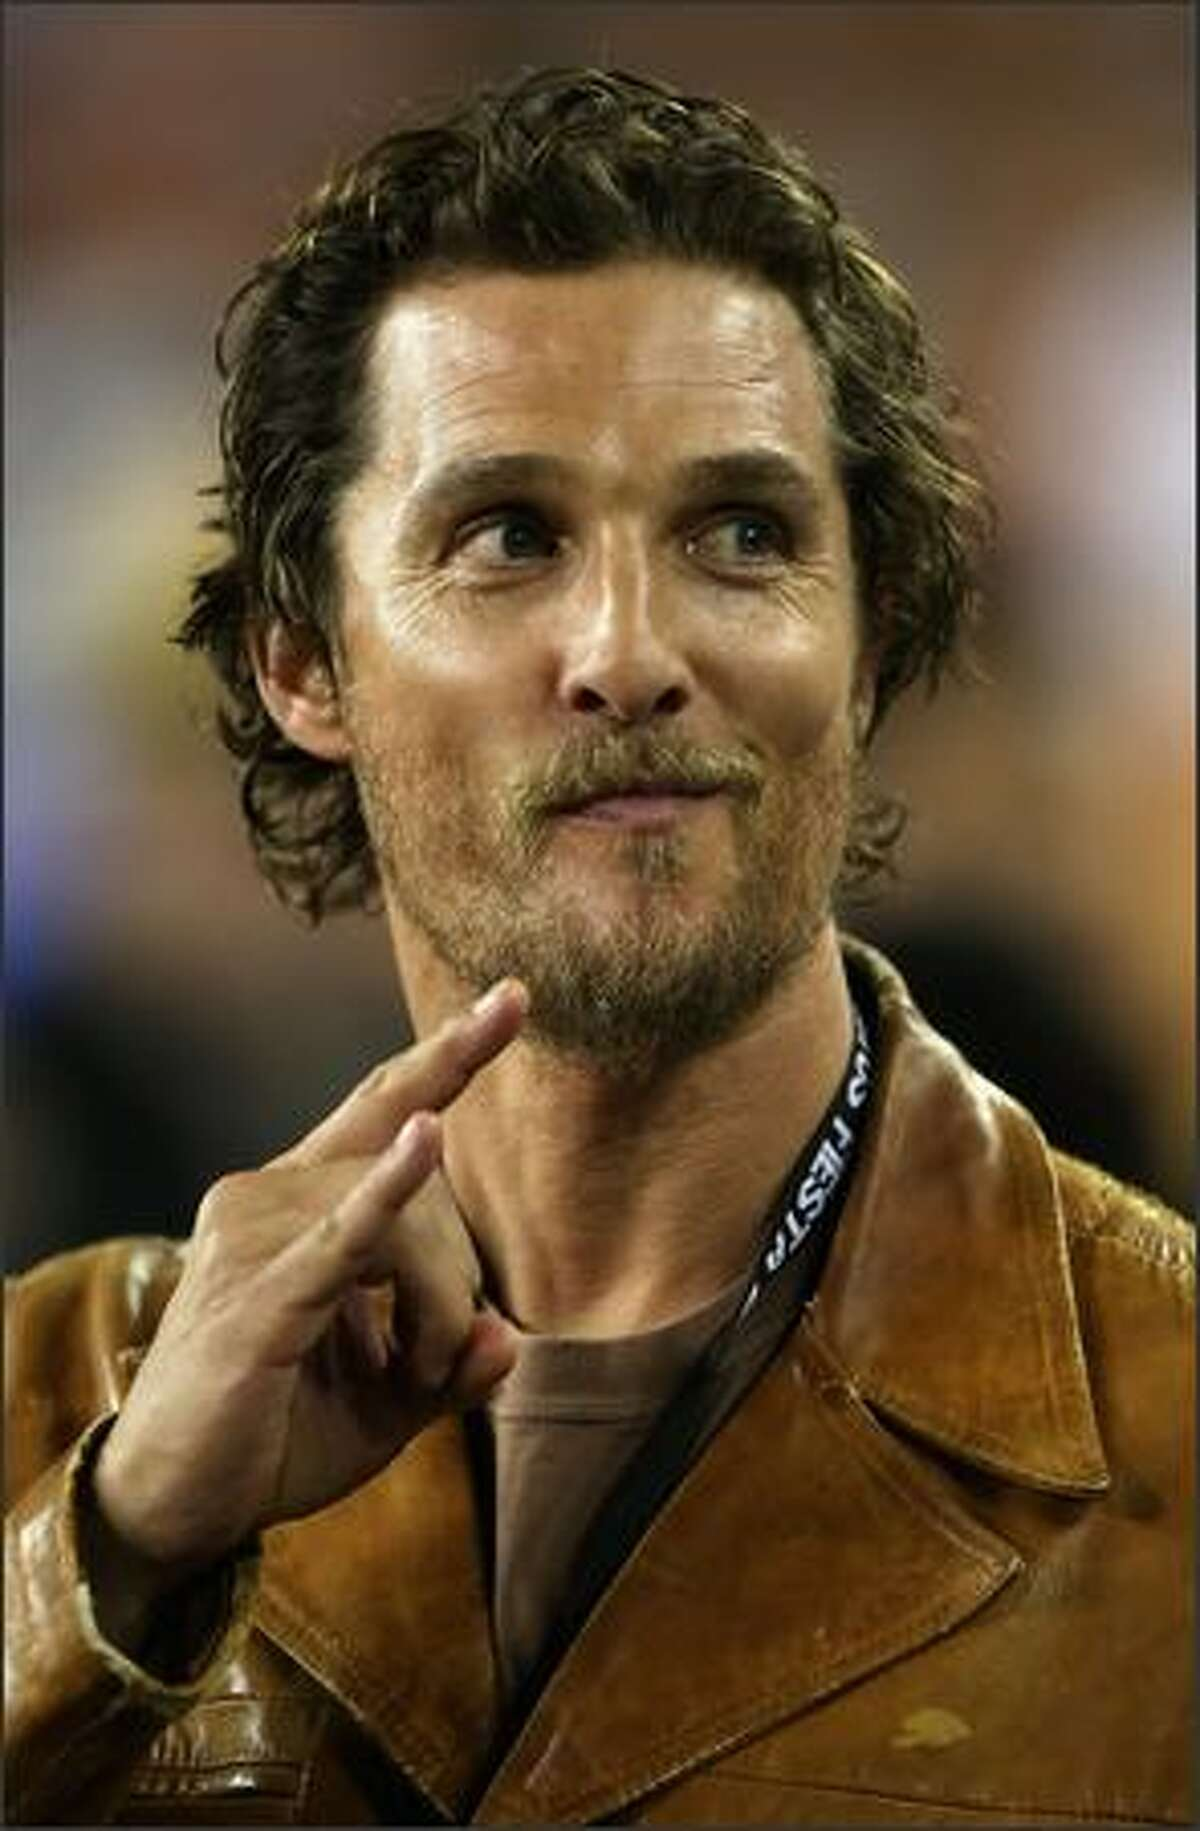 Actor Matthew McConaughey attends the Tostitos Fiesta Bowl Game between the Texas Longhorns and the Ohio State Buckeyes at University of Phoenix Stadium in Glendale, Arizona.